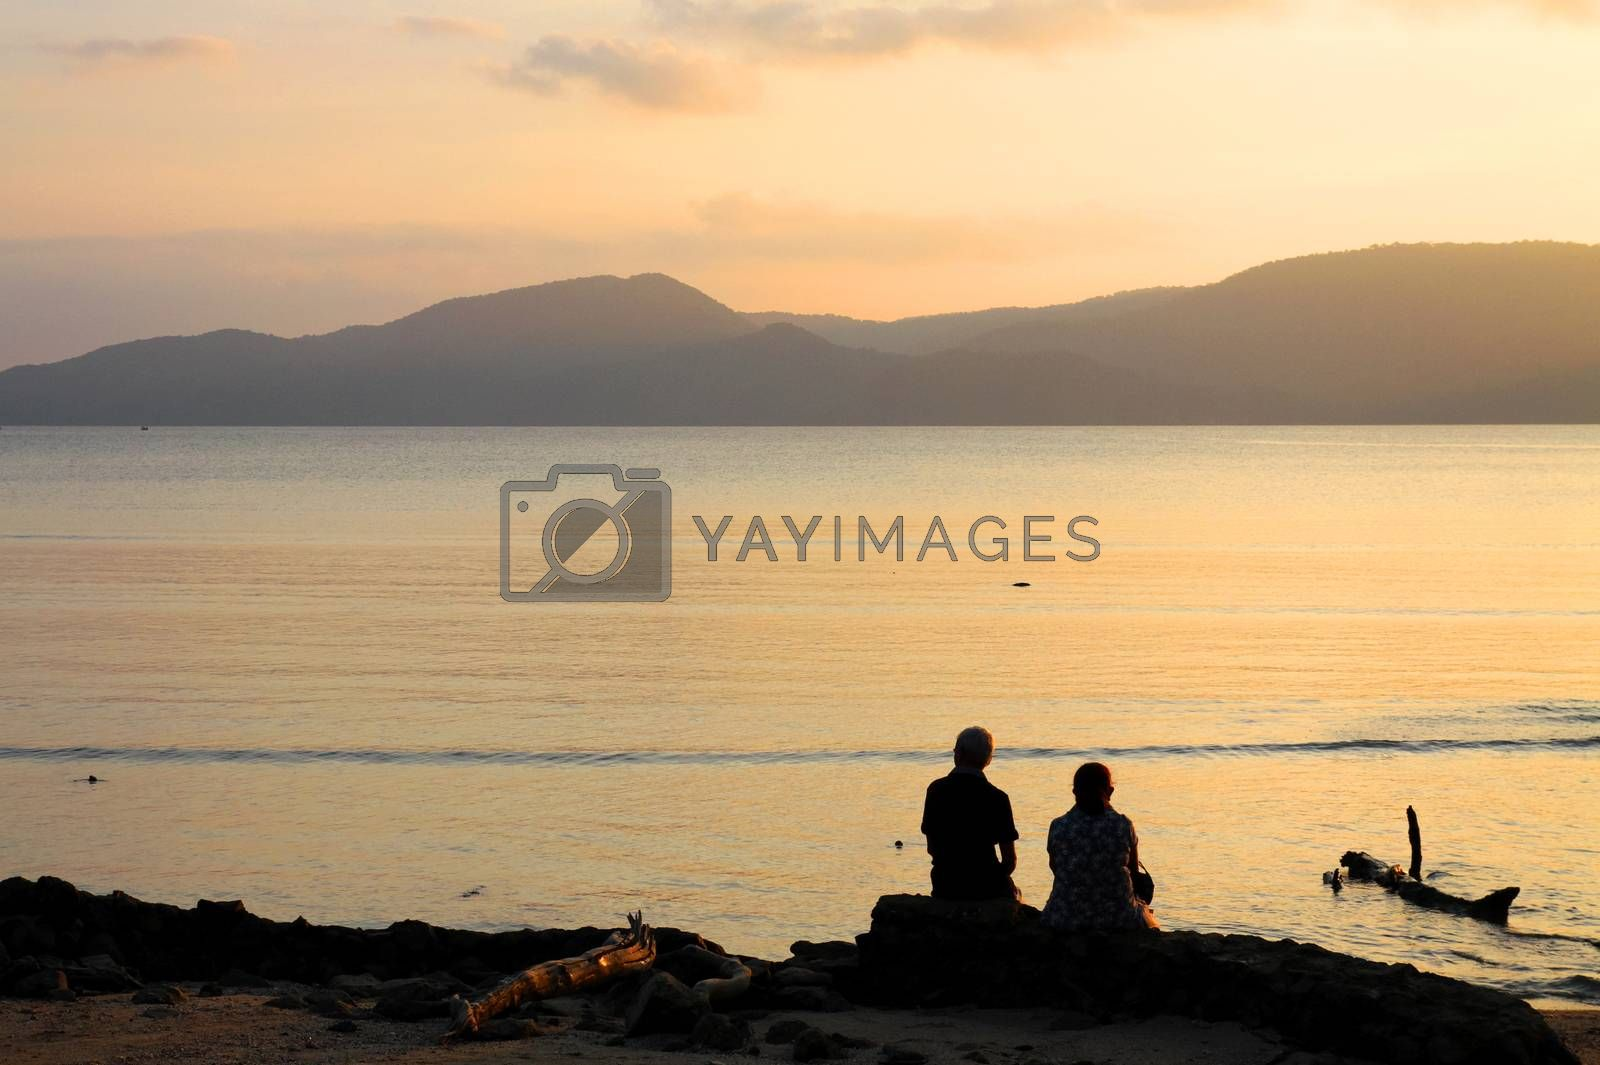 Royalty free image of Port Blair, Andamans, India.28January2012. Silhouette Unknown Indian Couple enjoying sunset behind mountains of andaman sea by giddavr